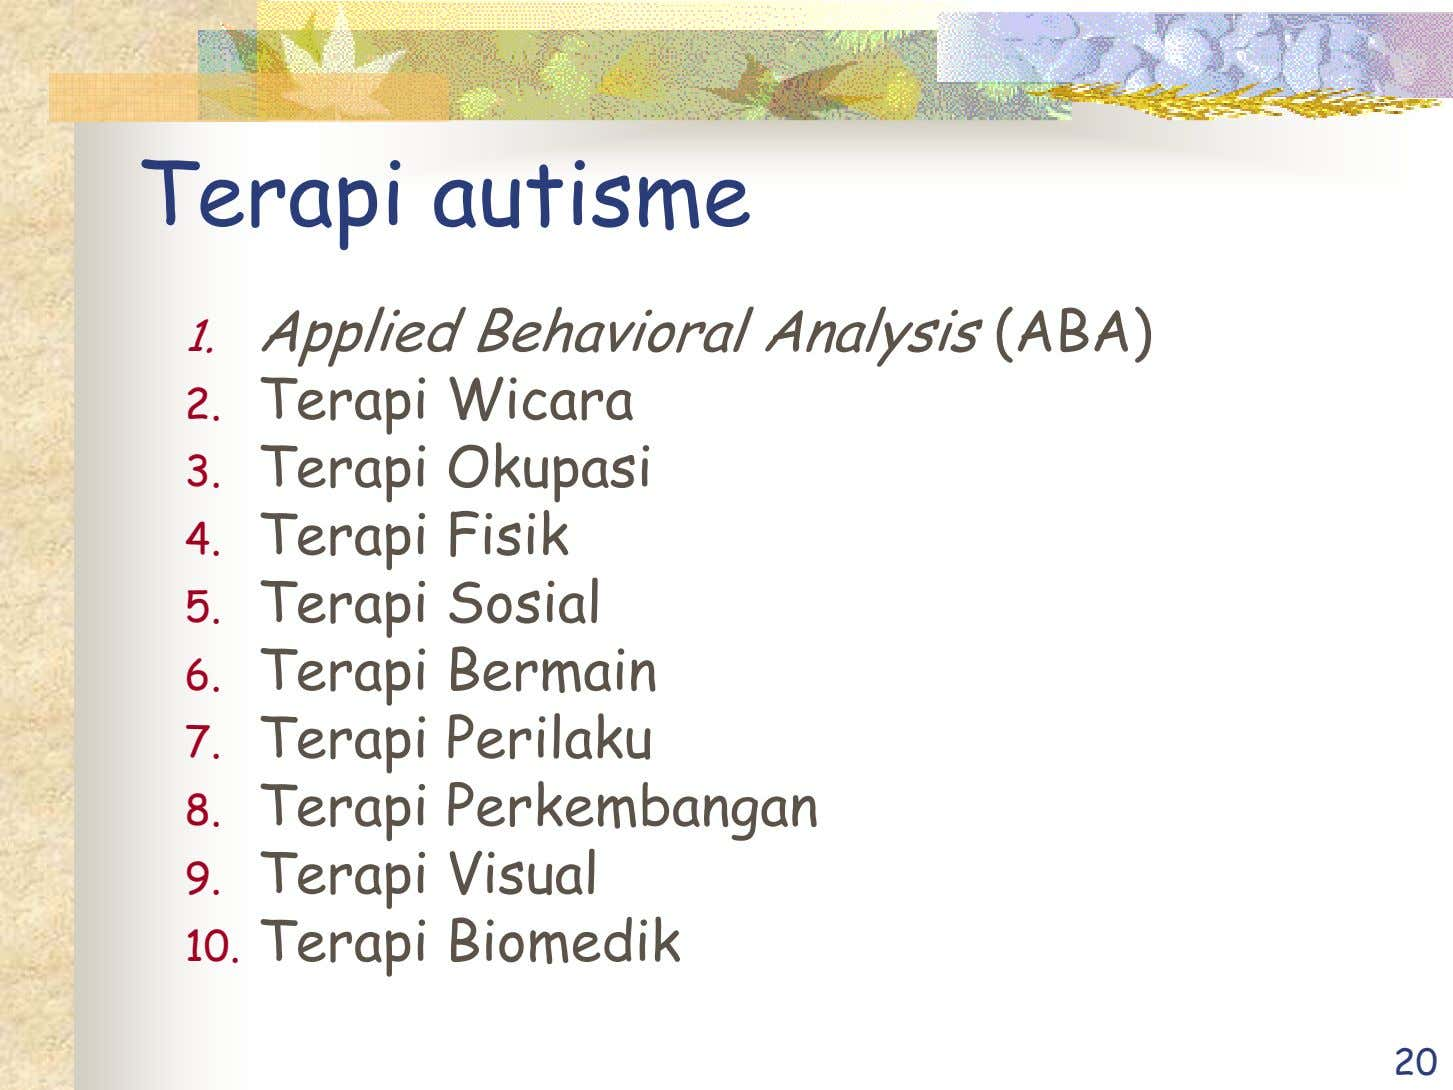 Terapi autisme 1. Applied Behavioral Analysis (ABA) 2. Terapi Wicara 3. Terapi Okupasi 4. Terapi